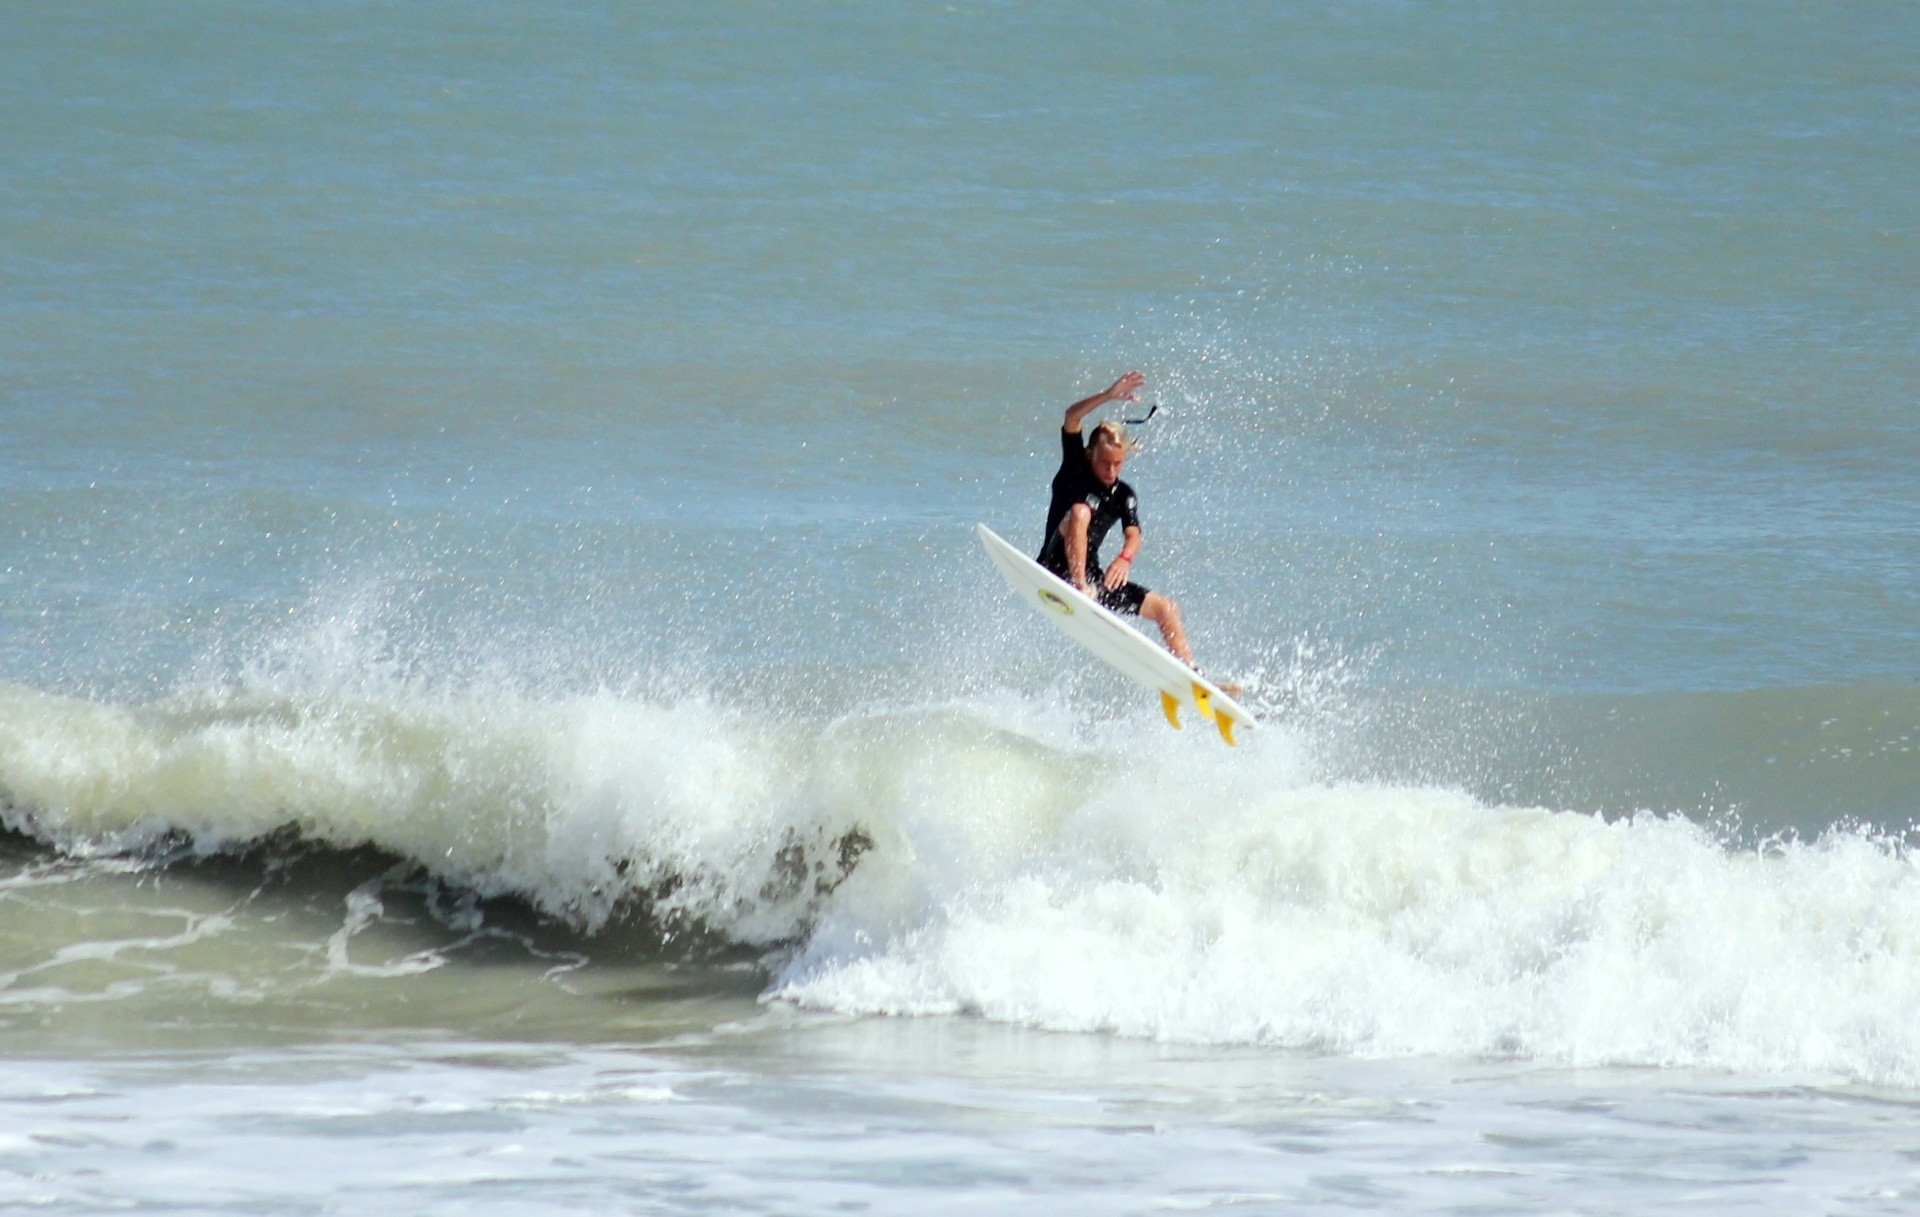 mpe's photo of Cocoa Beach